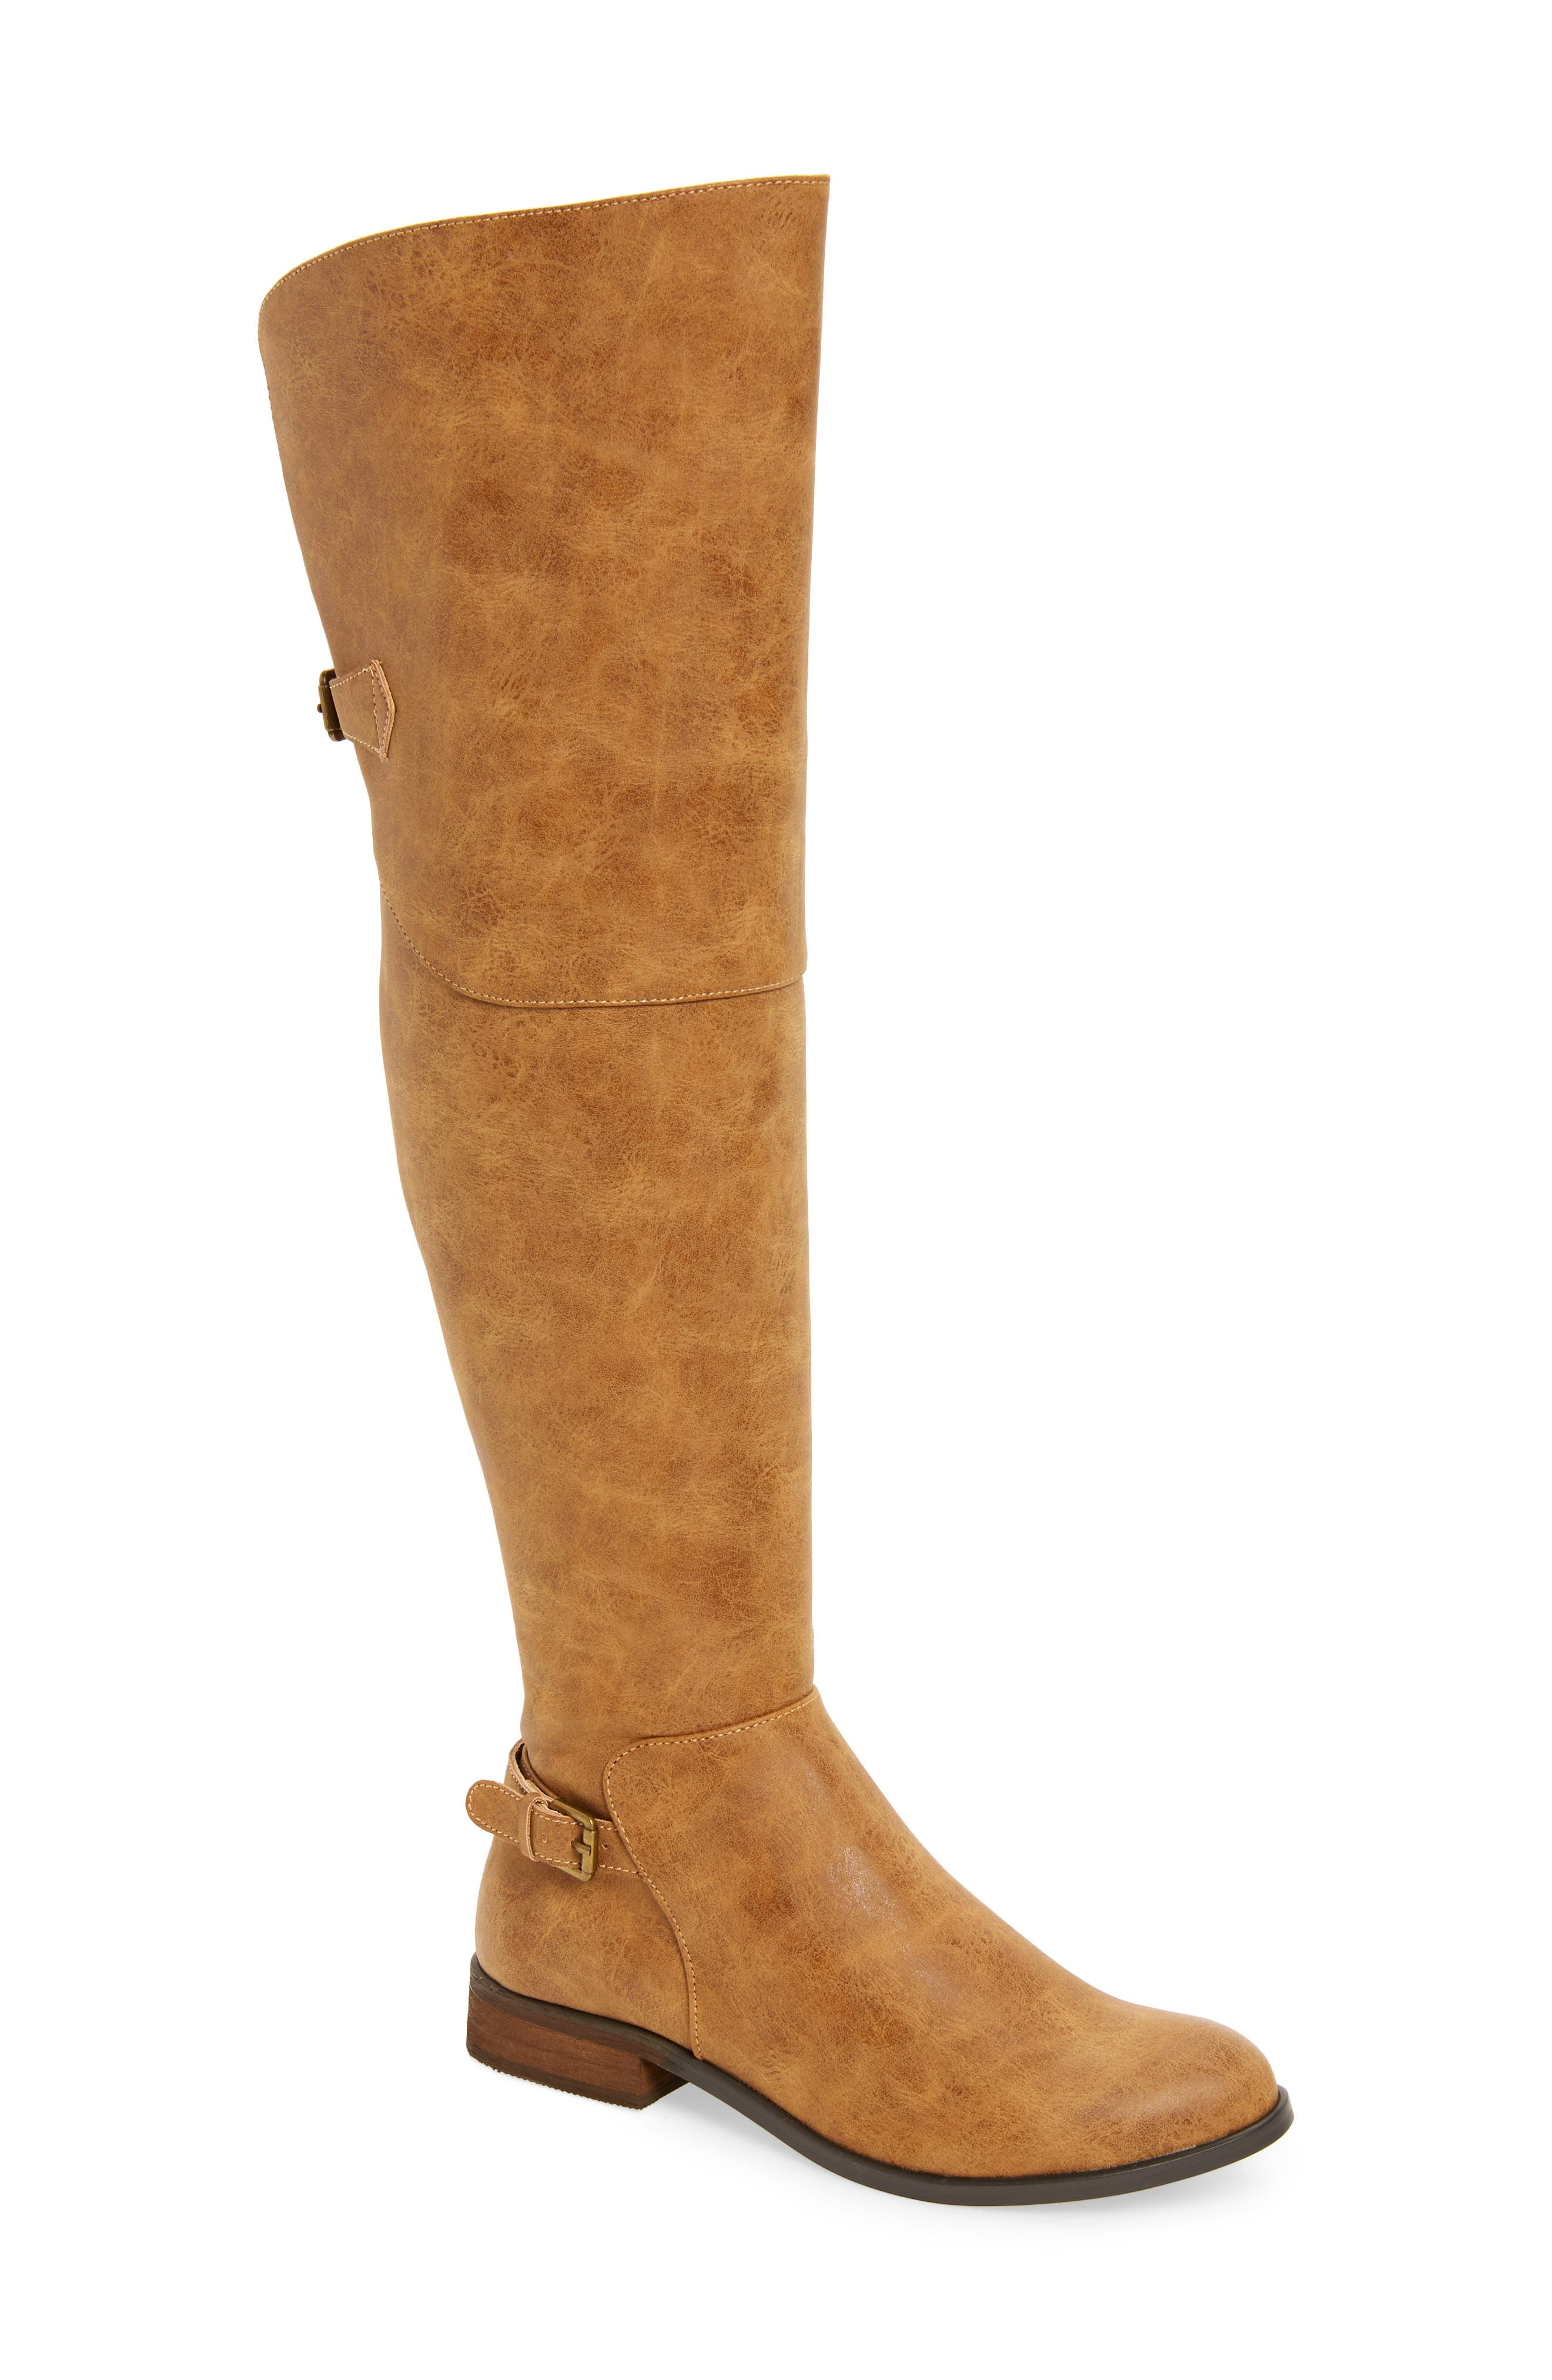 Otto Over the Knee Boot,                             Main thumbnail 1, color,                             Tan Faux Leather